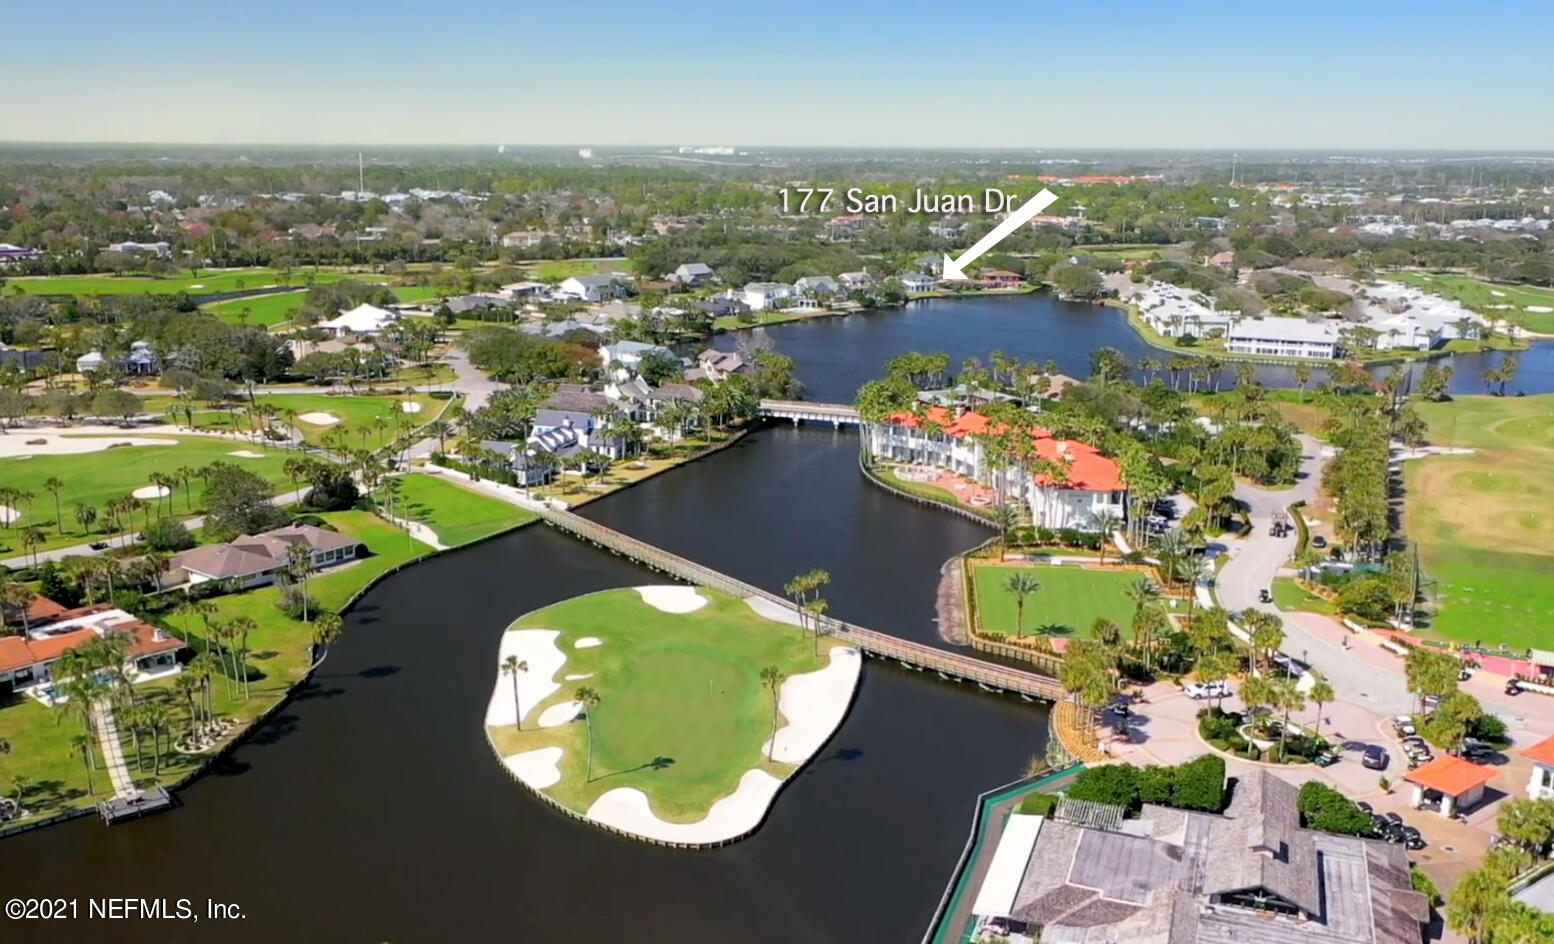 Great Investment property in Old Ponte Vedra Beach! 105 ' Lake frontage! Dock may be extended to 1000 sq ft. Large lot w only 20 ft setbacks allowing for more room to build , a better view and walking access to the PV Inn and Club which is much appreciated on weekends as club parking becomes a challenge!  Sandwiched between two pristine 18 hole golf courses and situated on a stretch of beautiful lagoon shoreline the veranda and covered balcony face East to the Atlantic Ocean. Sleep to the sound of the waves crashing on golden sandy beaches just a quick stroll away.  The proximity of the home to the Ponte Vedra Inn and Club allows the homeowner to take full advantage of all the amenities of the club. Within walking distance! Two 18 hole Golf courses, Racquet Club, Gym, Spa and Oceanfront d A complete renovation and addition were recently completed on this home! A new master bedroom and adjacent sitting area were added upstairs as well as a spacious covered balcony. Amenities include full wet bar, TV and surround sound speaker system. The master bathroom  has a spa like feel to it with travertine floors and shower tile as well as a state of the art kohler shower system. Two separate vanities with his and her own personal sinks, separate toilets and two spacious walk- in master closets. Washer and dryer connection so that you may have a laundry on both floors. The covered balcony off the master bedroom catches a nice tropical breeze and the views of the lake from here are magnificent. The Eastern exposure provides a cool shade for evening entertainment as the summer sun sets in the west. The ground floor hosts an open living area with ground floor master bedroom option as well with views of the lake and a 2nd bedroom on the opposite side of the home also enjoying water views. Almost every room in the home has a view of  water and nature. Impact resistant slider doors and windows let in an abundance of light! You feel very protected from the elements in this home as it 